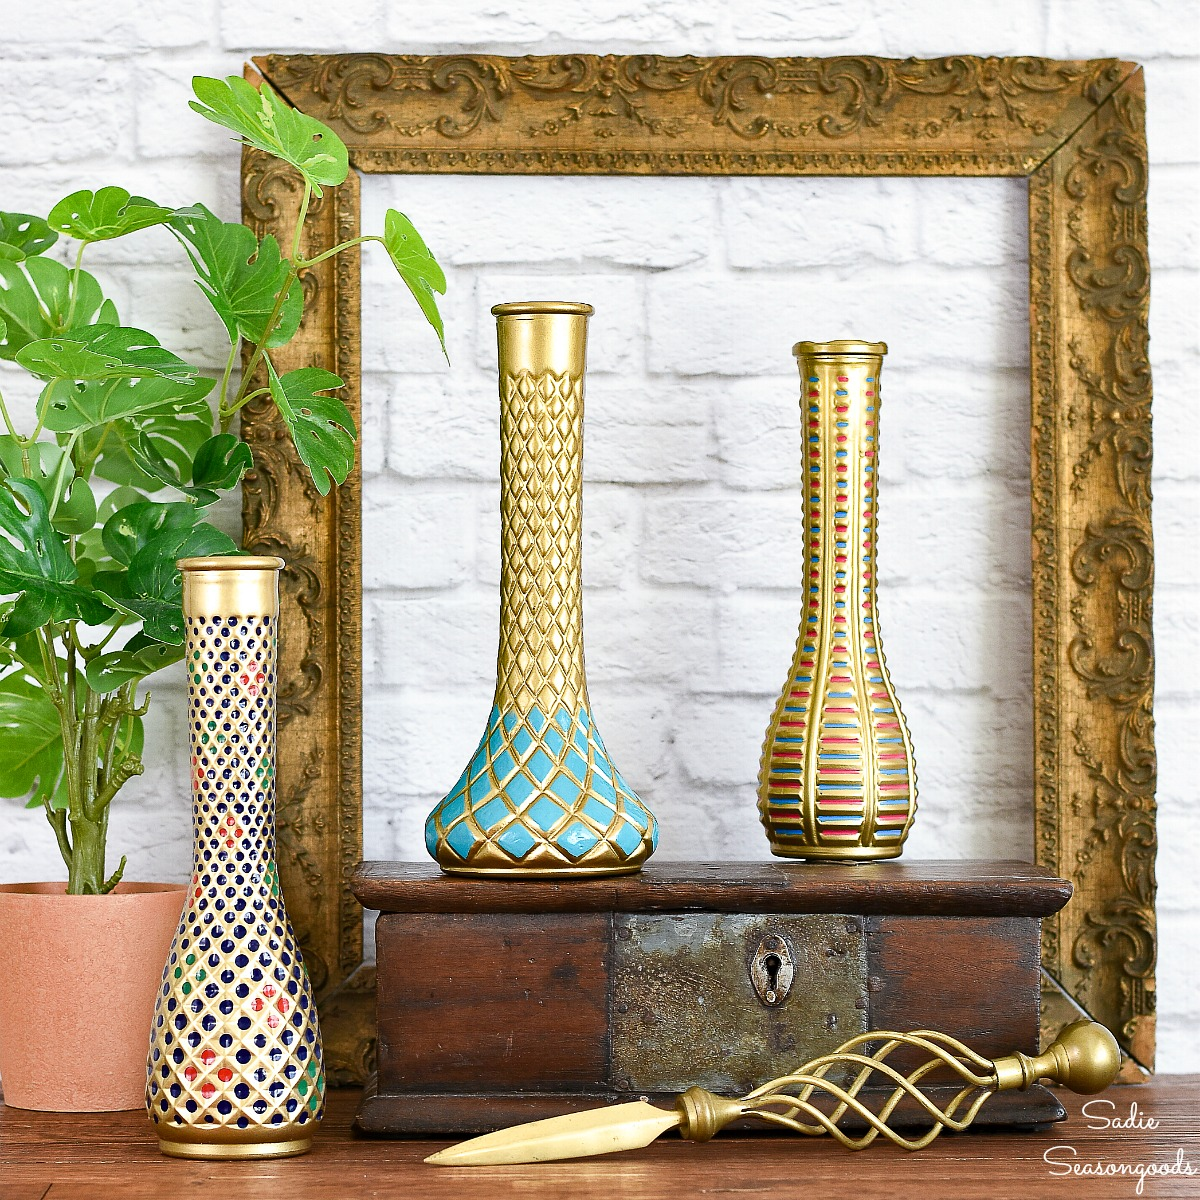 Cloisonne Vase Inspiration with Florist Vases from the Thrift Store